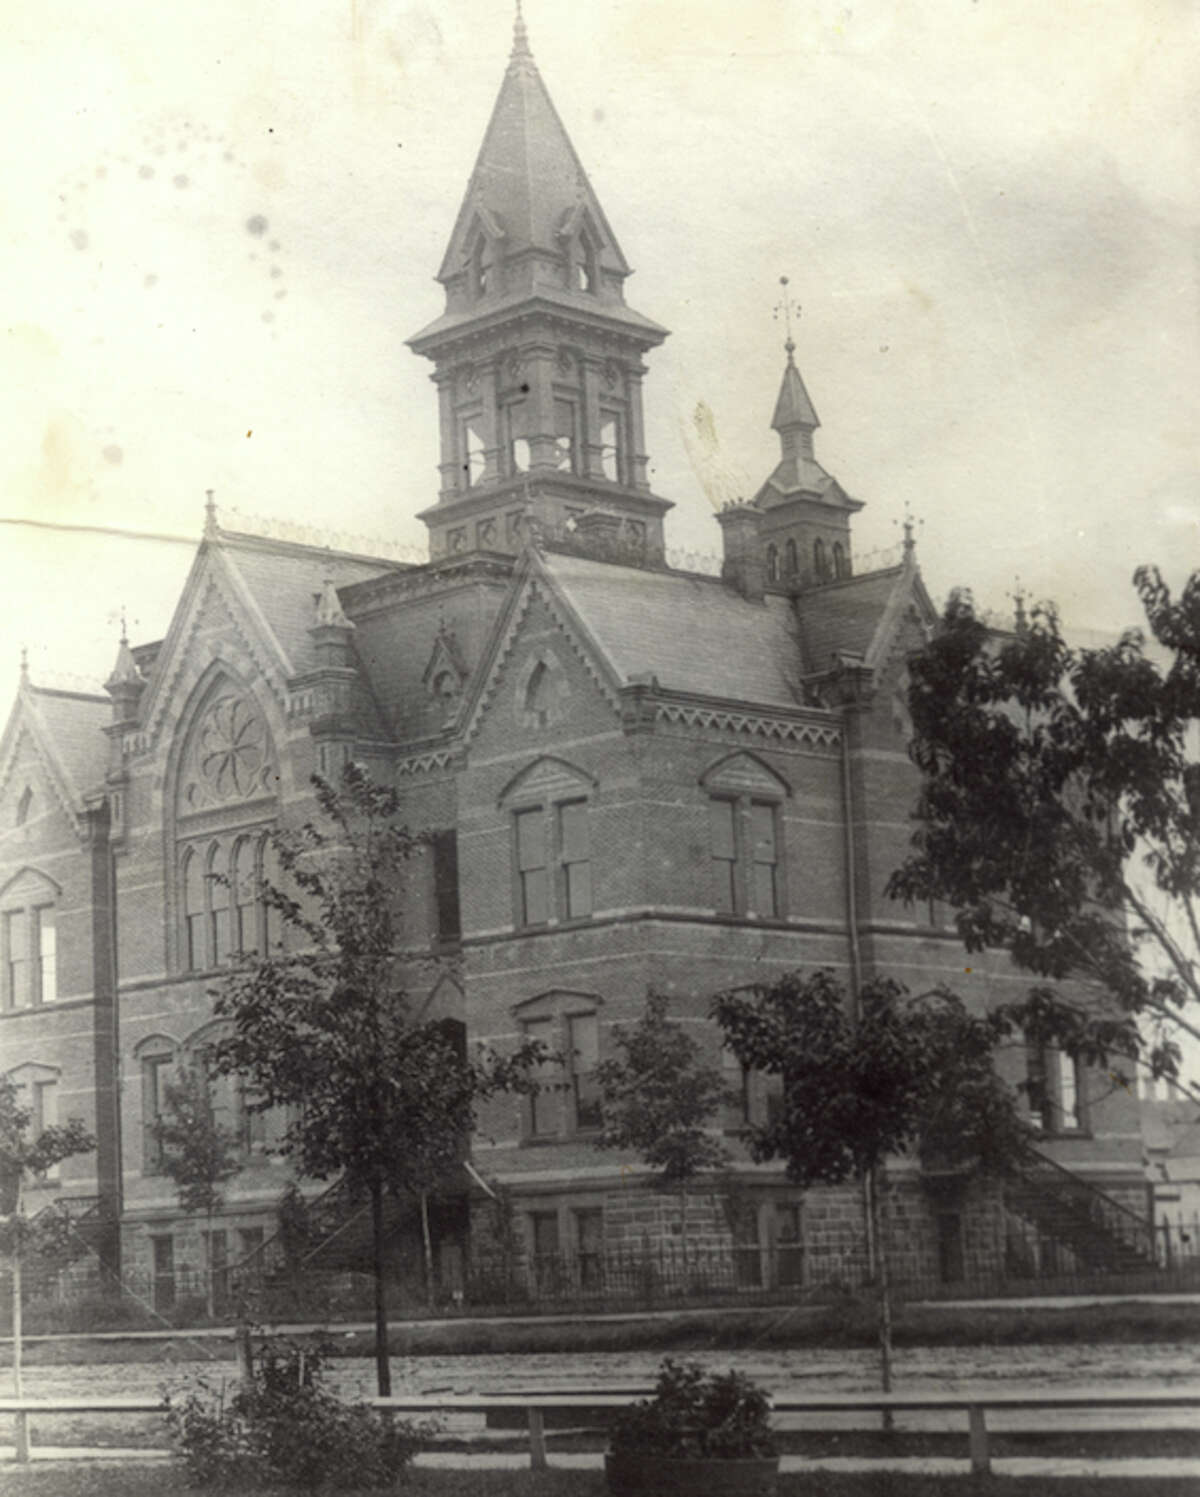 This photo shows a view of the old Manistee County Courthouse circa 1900.